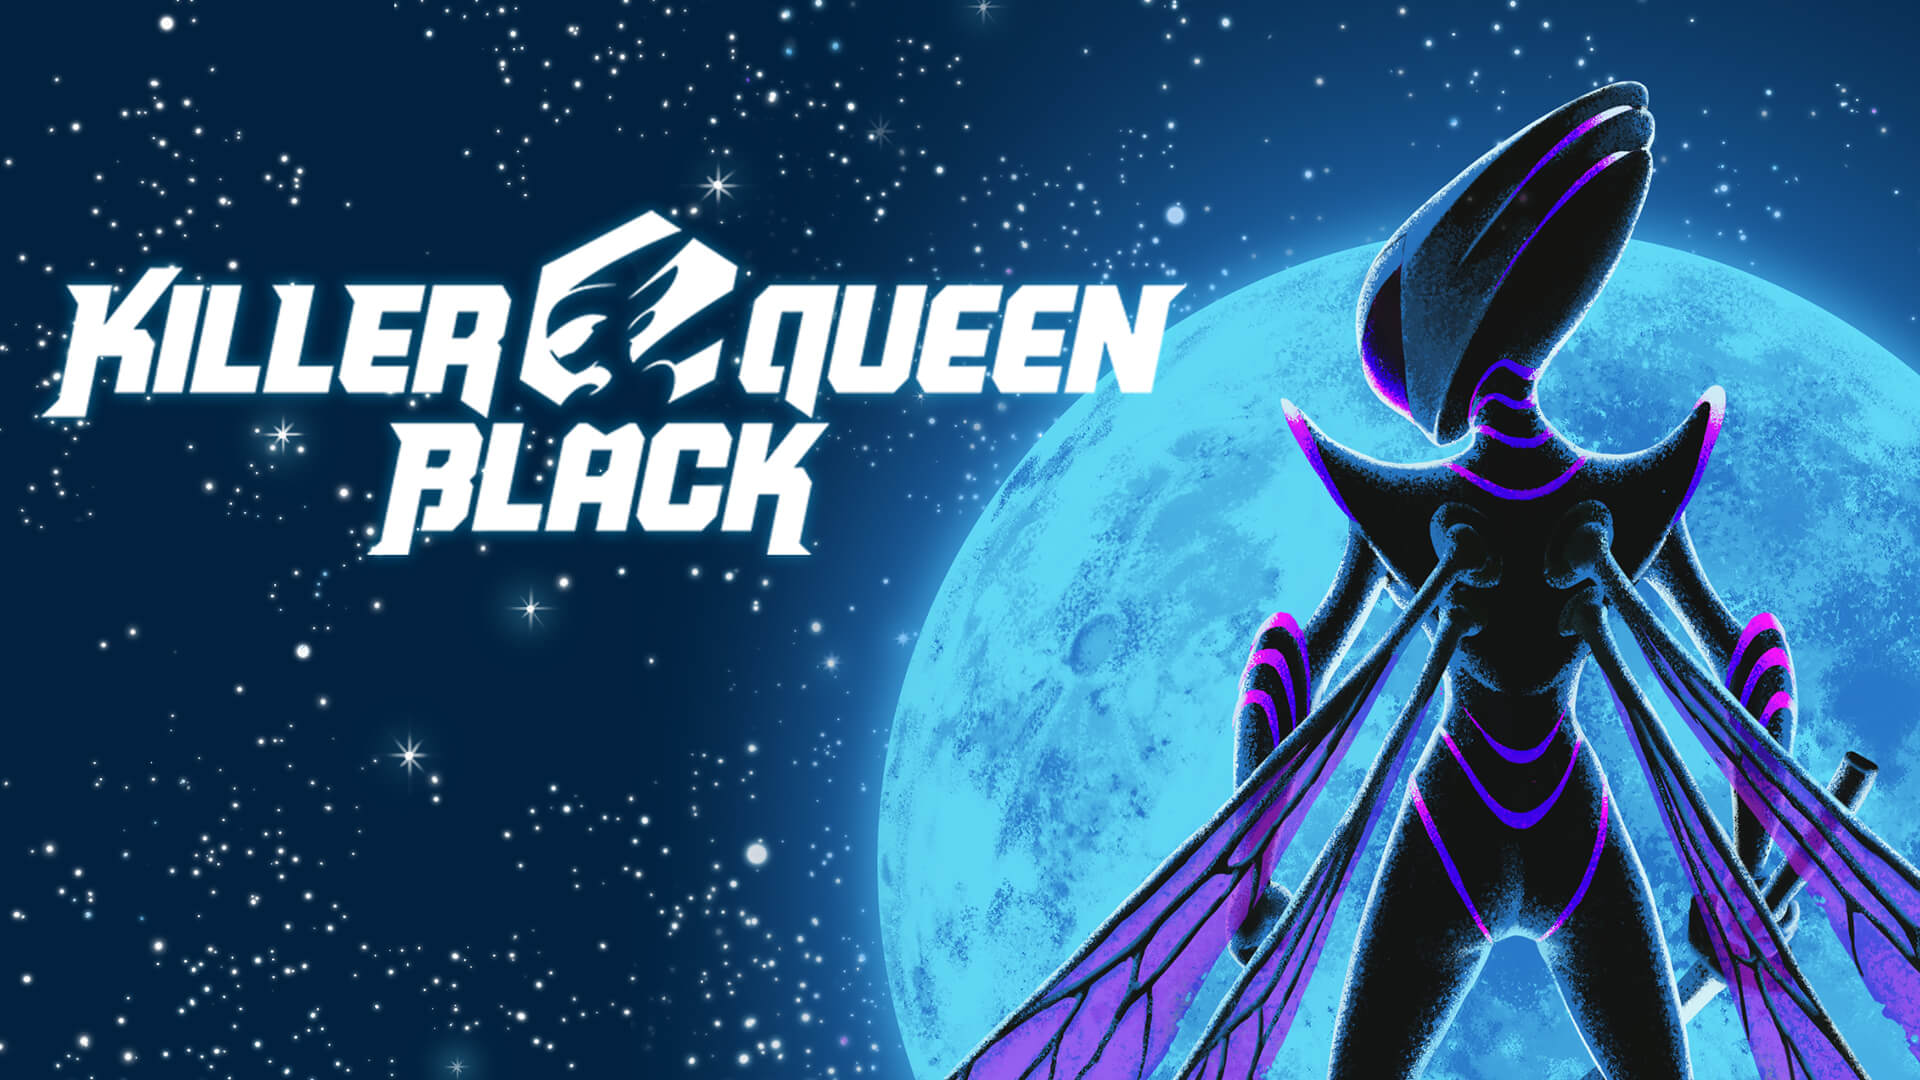 Killer Queen Black Releases on Game Pass in Q1 2021